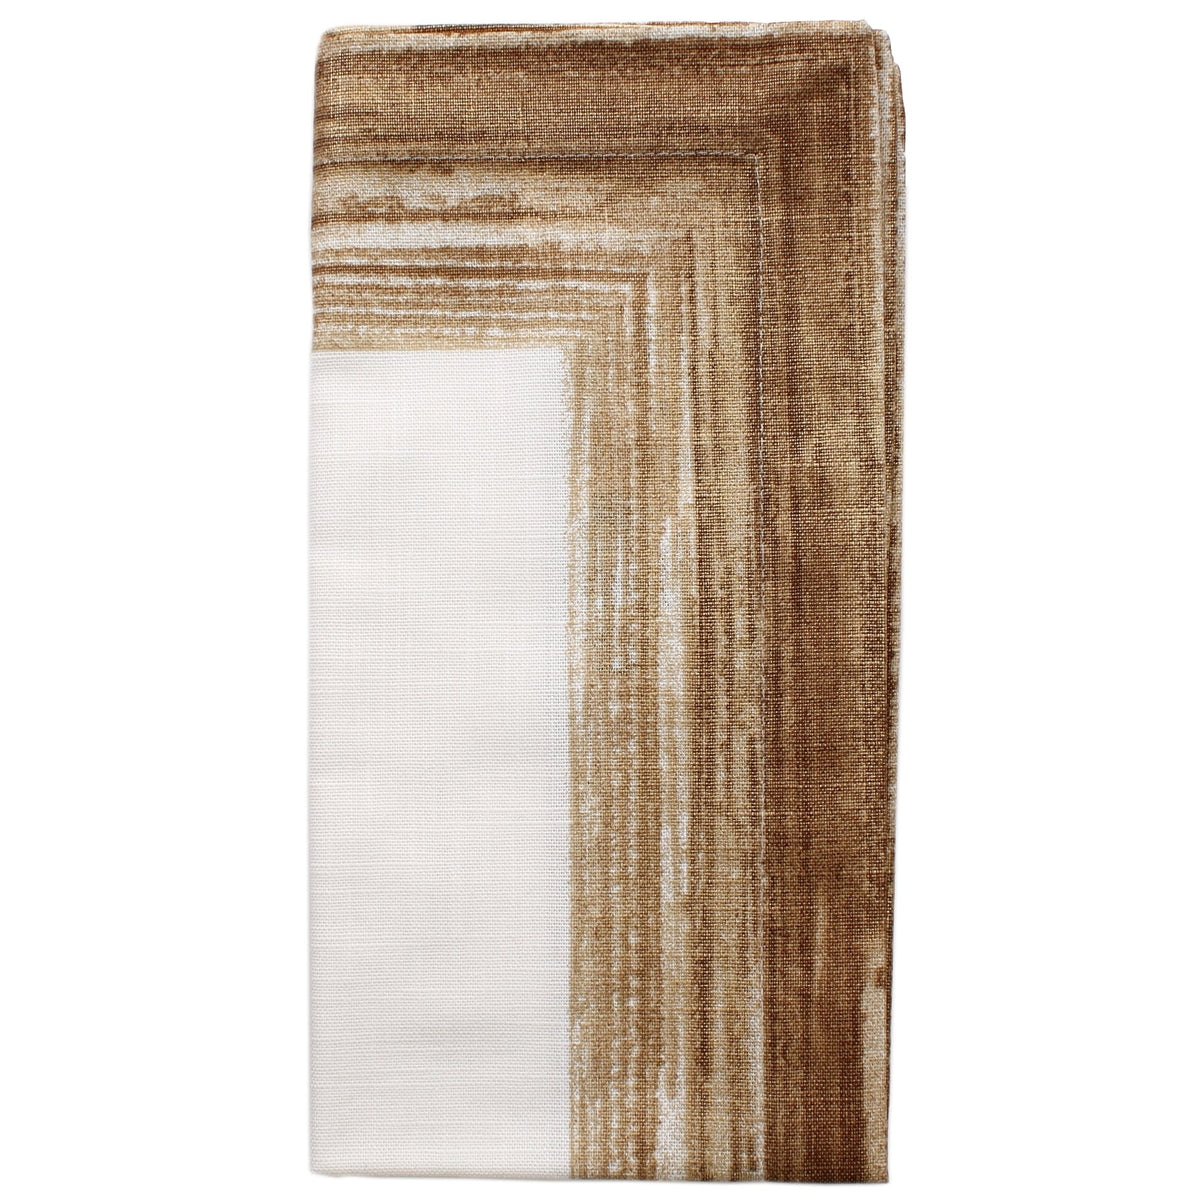 Cornice Gold Napkin Set of 4